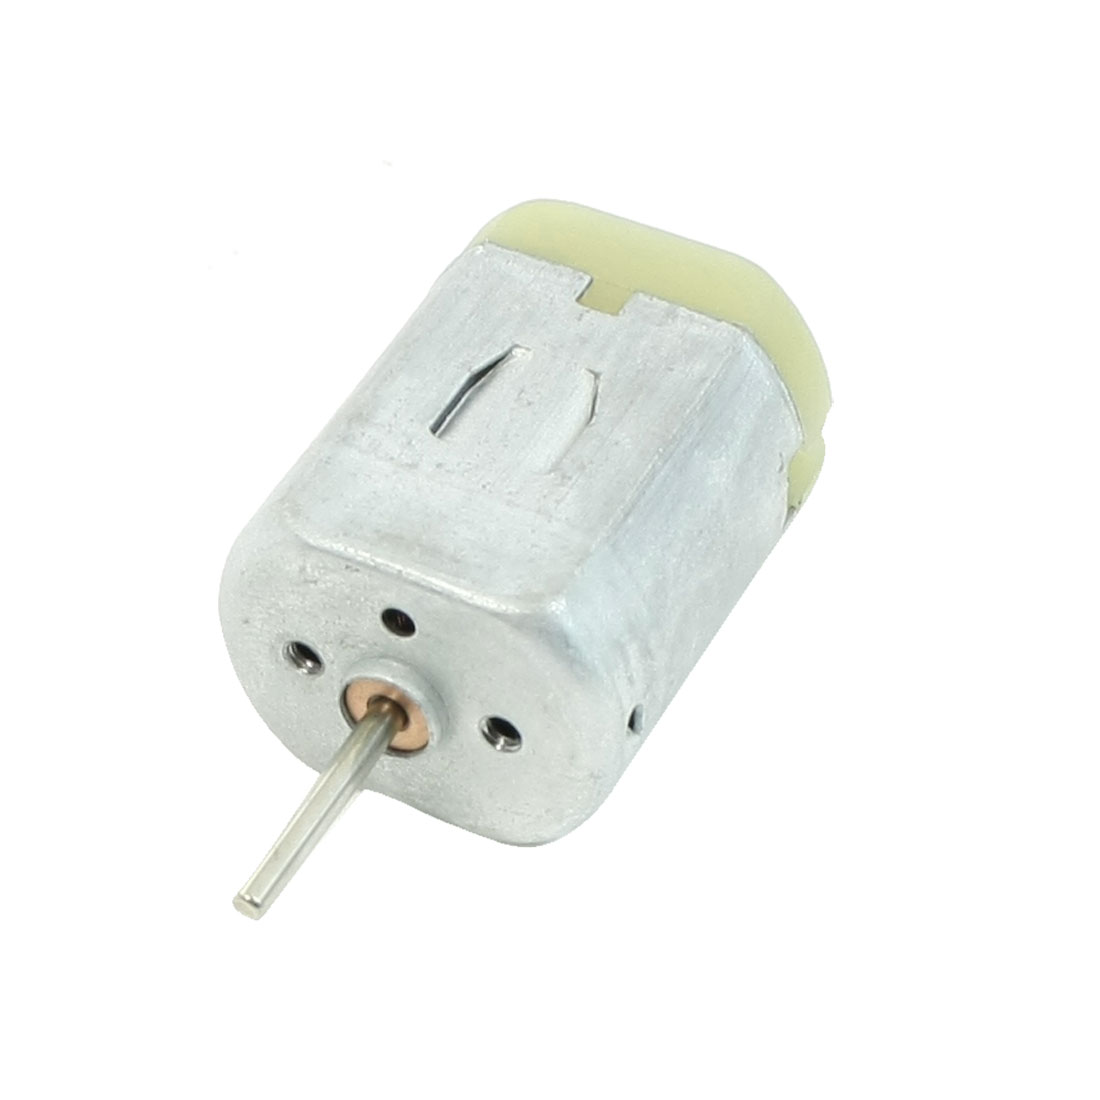 DC 12V 0.15A 12000RPM 2mm Dia Shaft 2 Terminals 2P Magnetic Motor